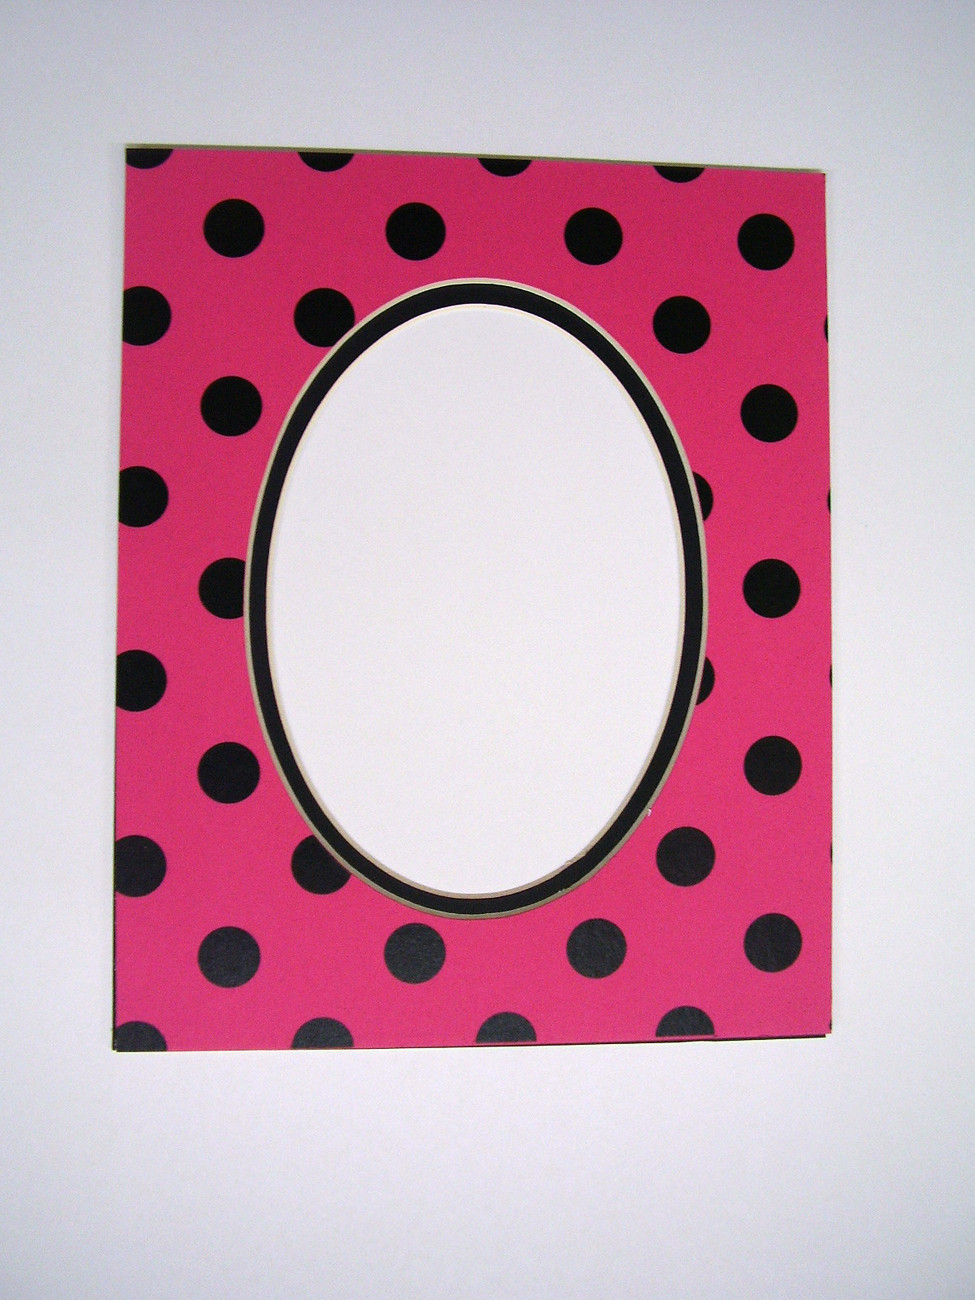 Primary image for Picture Framing Mat 8x10 for 5x7 photo Polka Dot Hot Pink and Black Fashion Mat